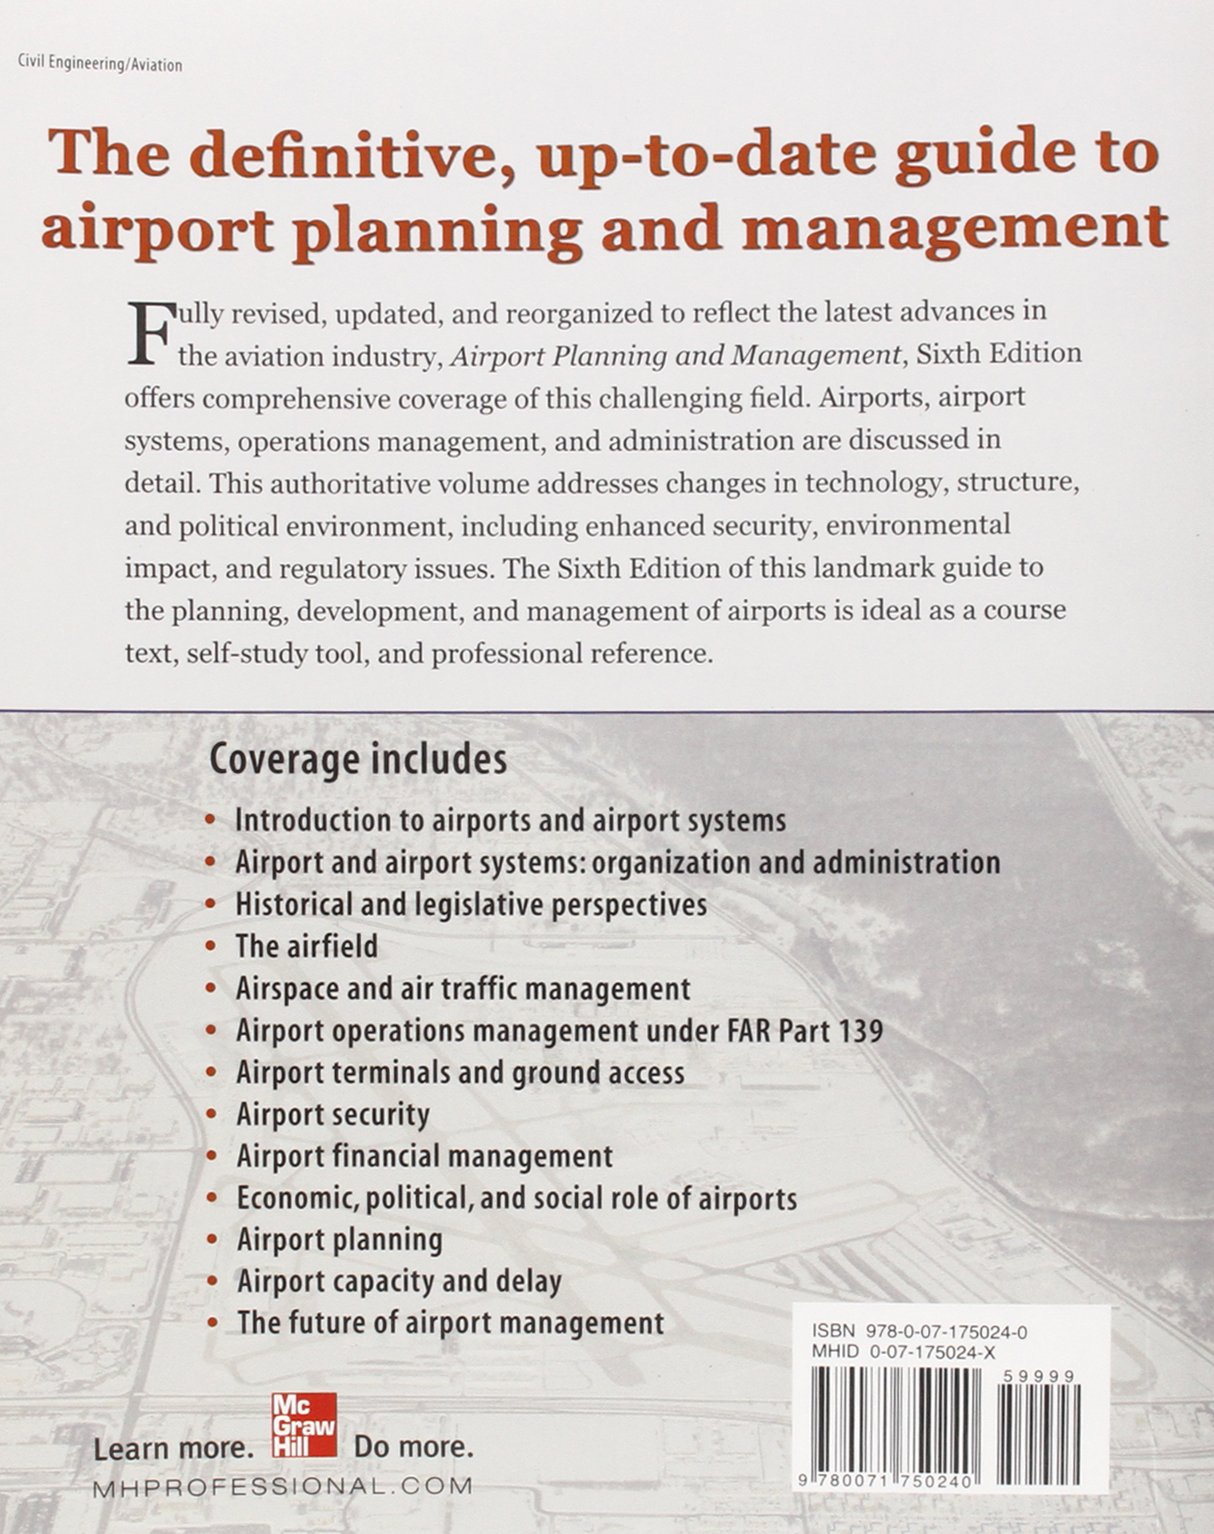 Airport Planning And Management 6/E: Amazon.co.uk: Seth Young, Alexander  Wells: Books